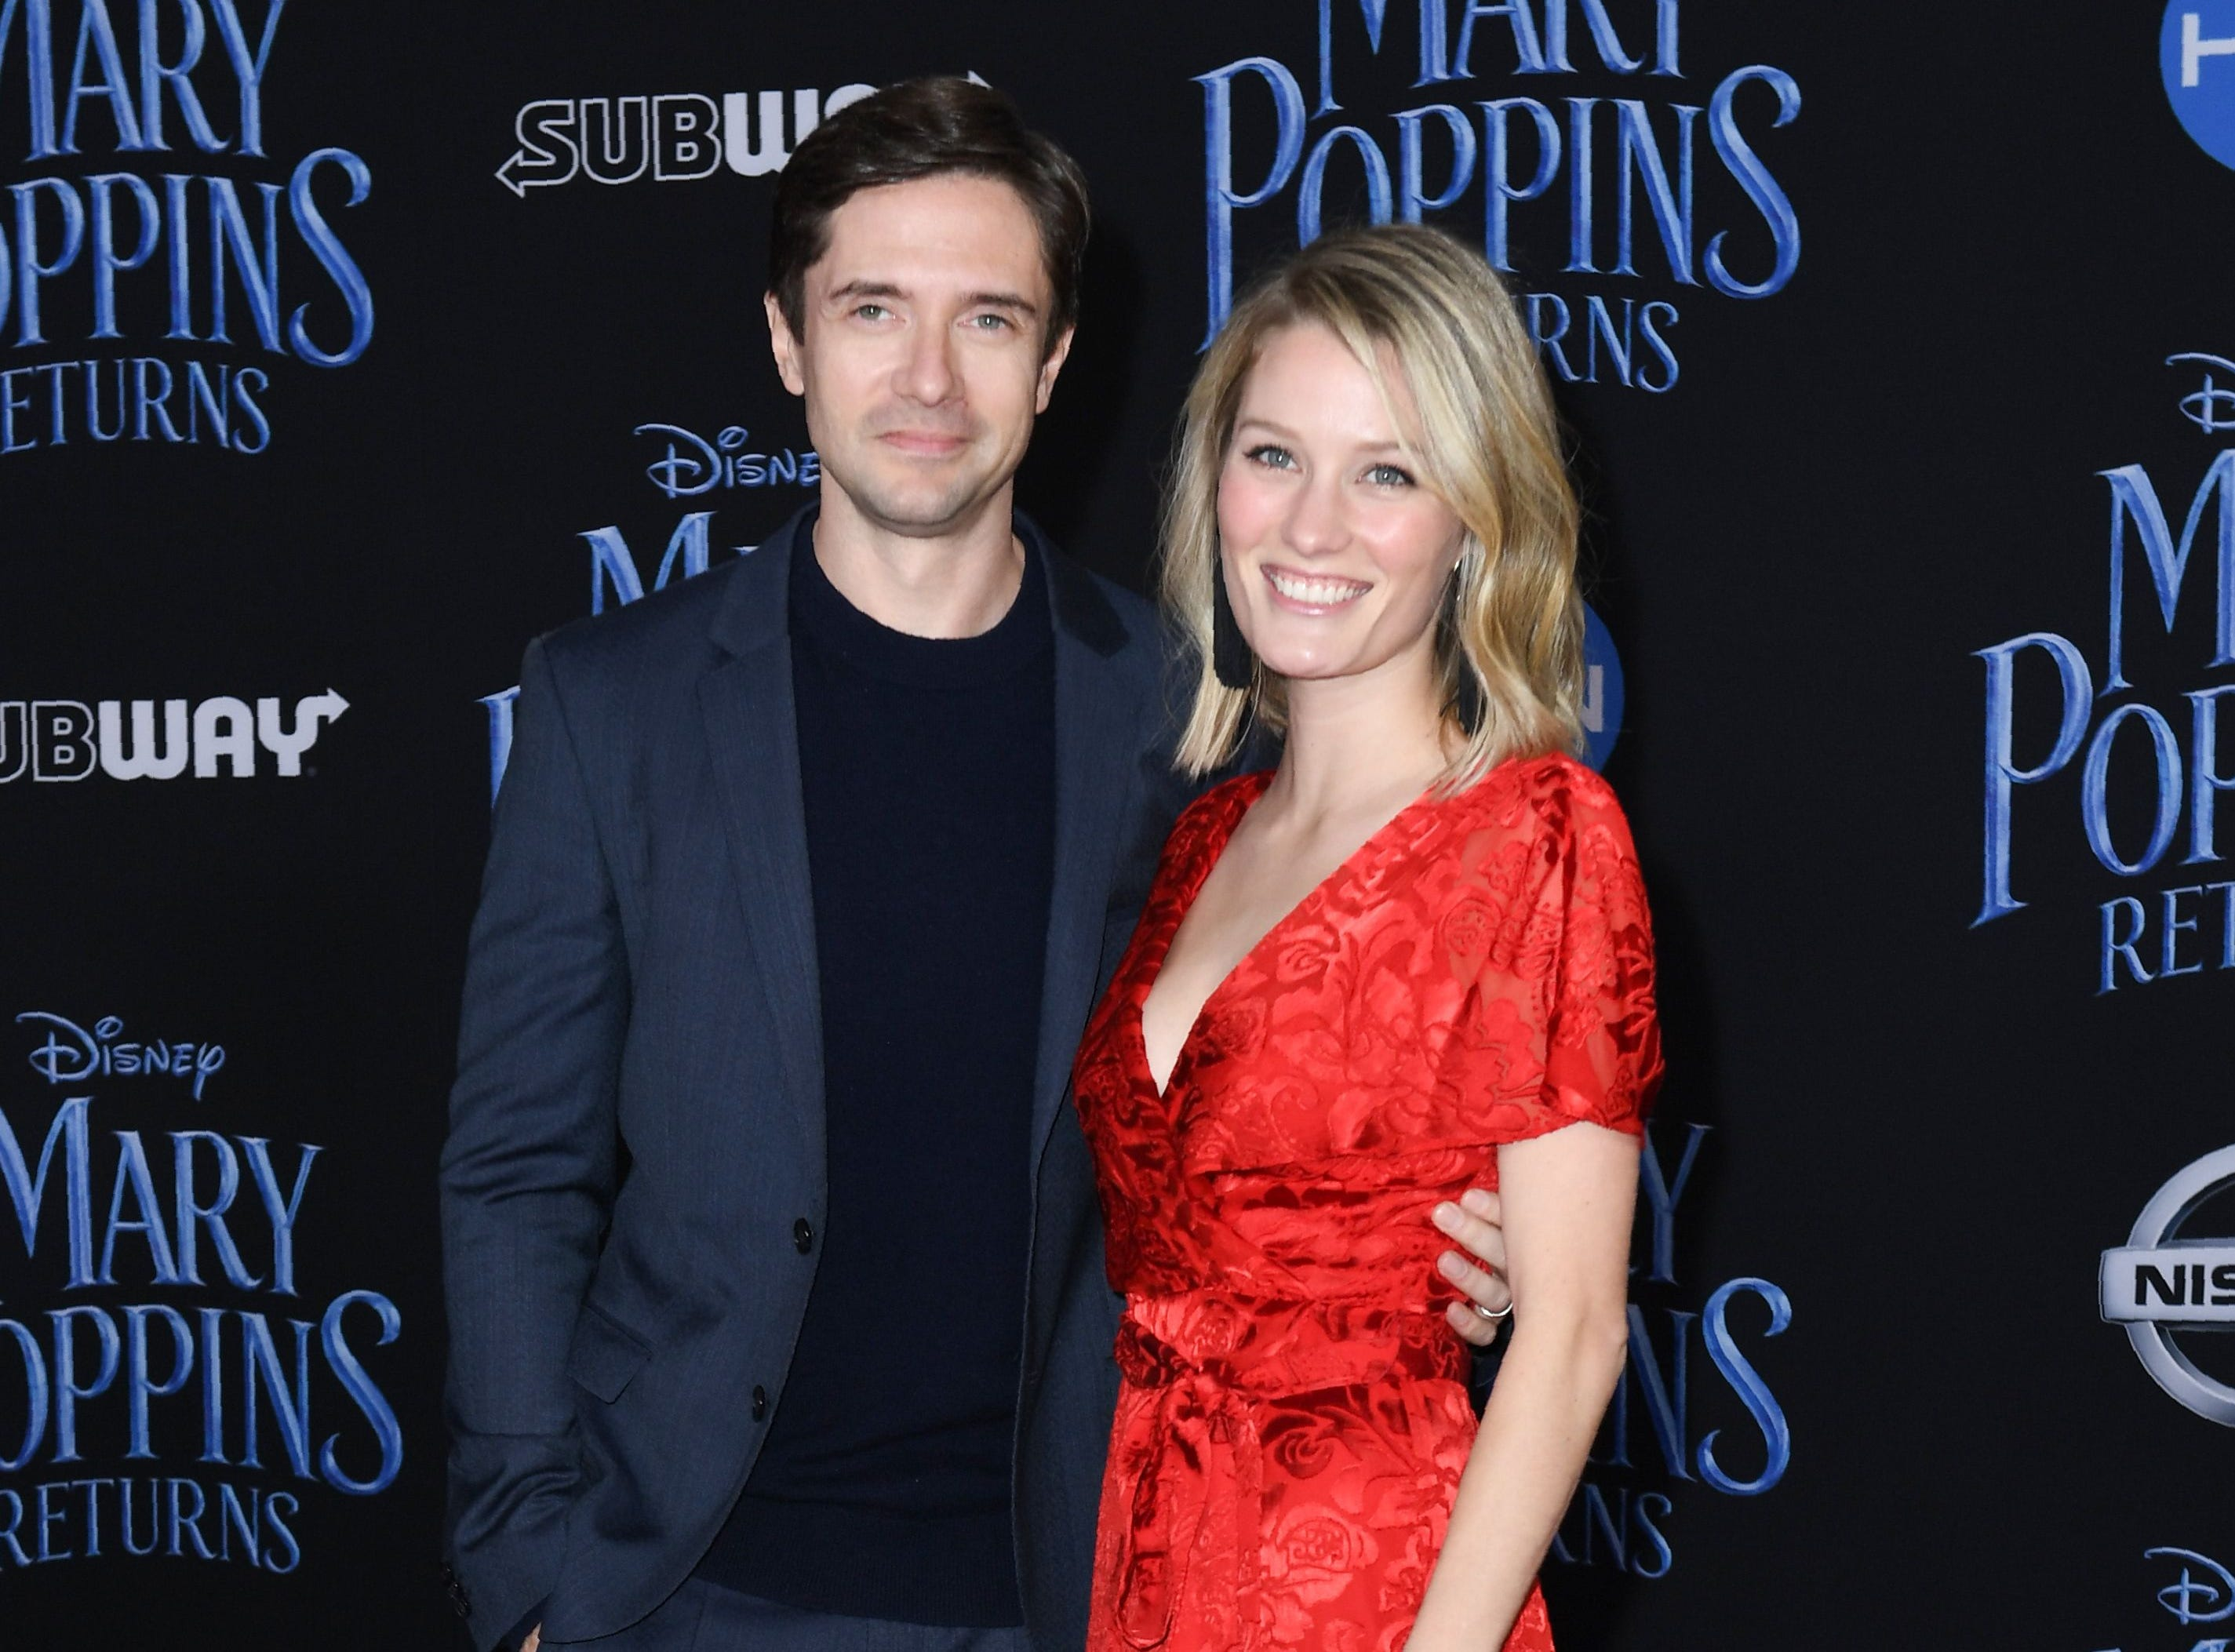 """US actor Topher Grace and his wife US actress Ashley Hinshaw arrive for the world premiere of Disney's """"Mary Poppins Returns"""" at the Dolby theatre in Hollywood on November 29, 2018. (Photo by VALERIE MACON / AFP)VALERIE MACON/AFP/Getty Images ORG XMIT: 'Mary Pop ORIG FILE ID: AFP_1B81H0"""